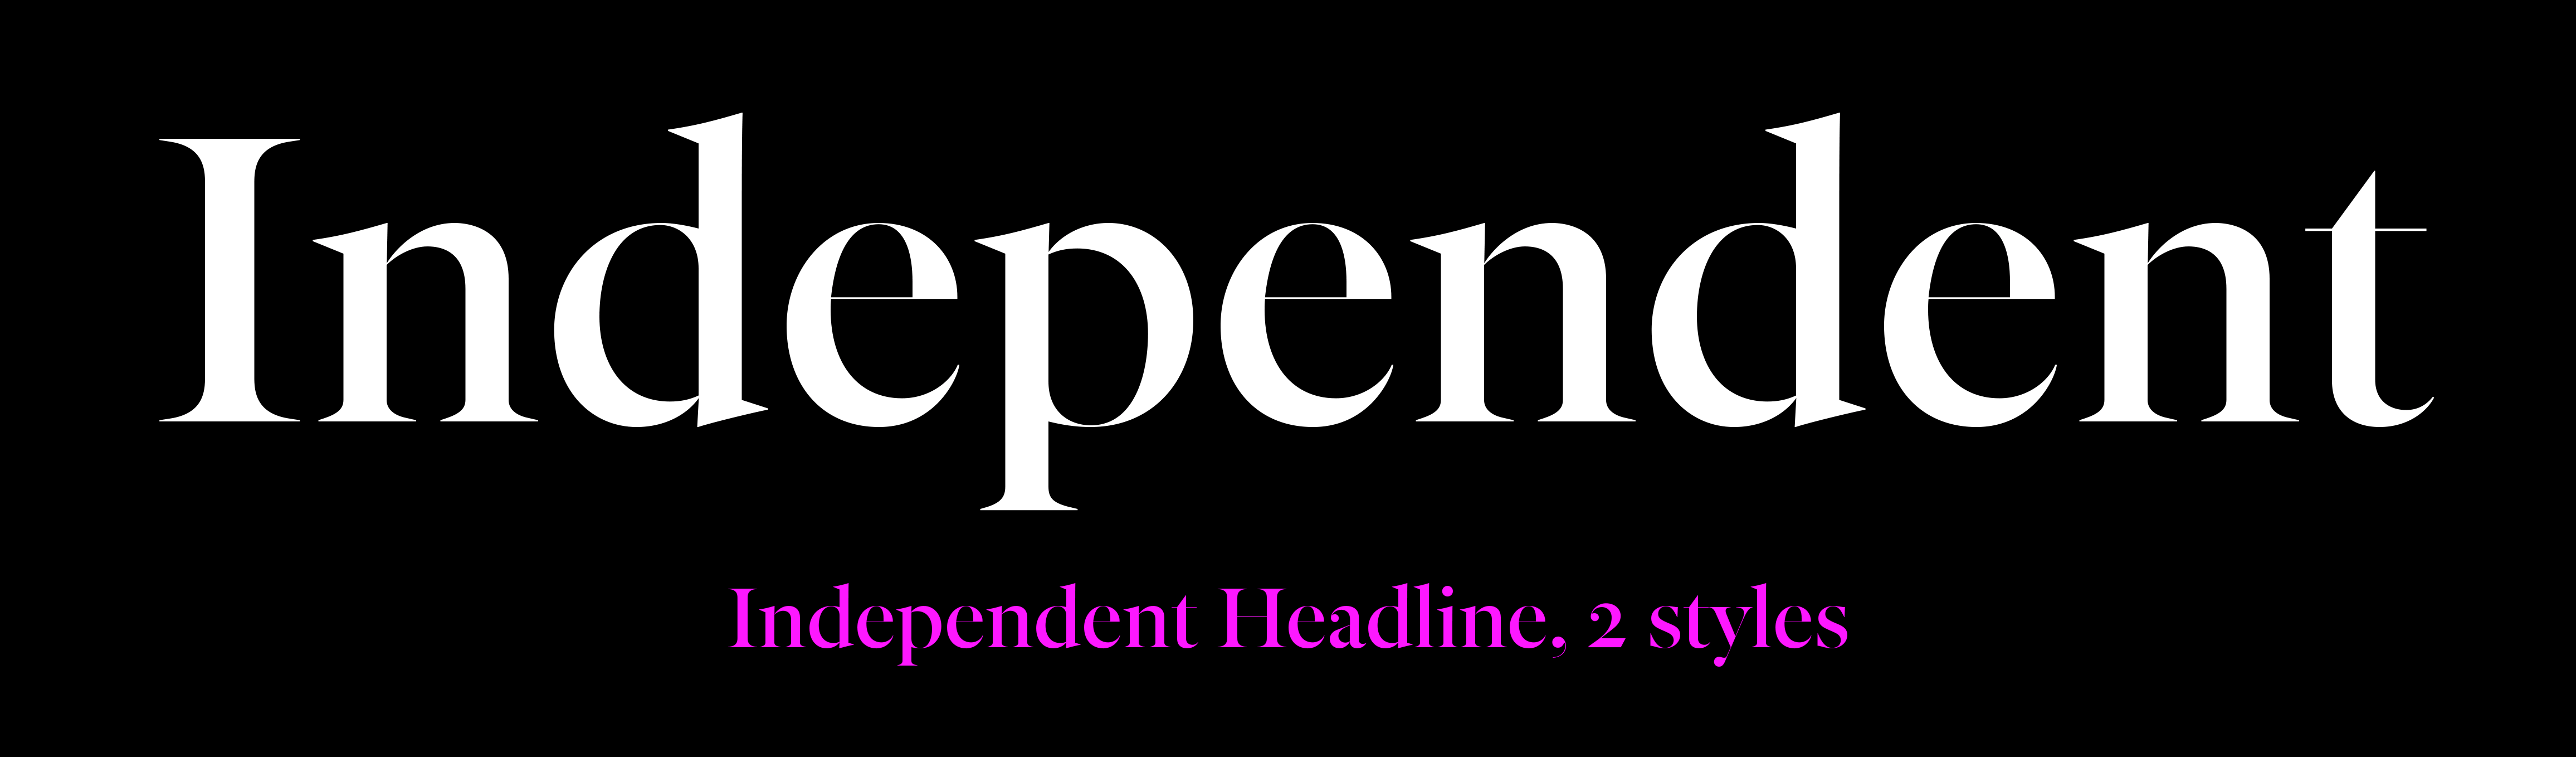 Independent Headline sample